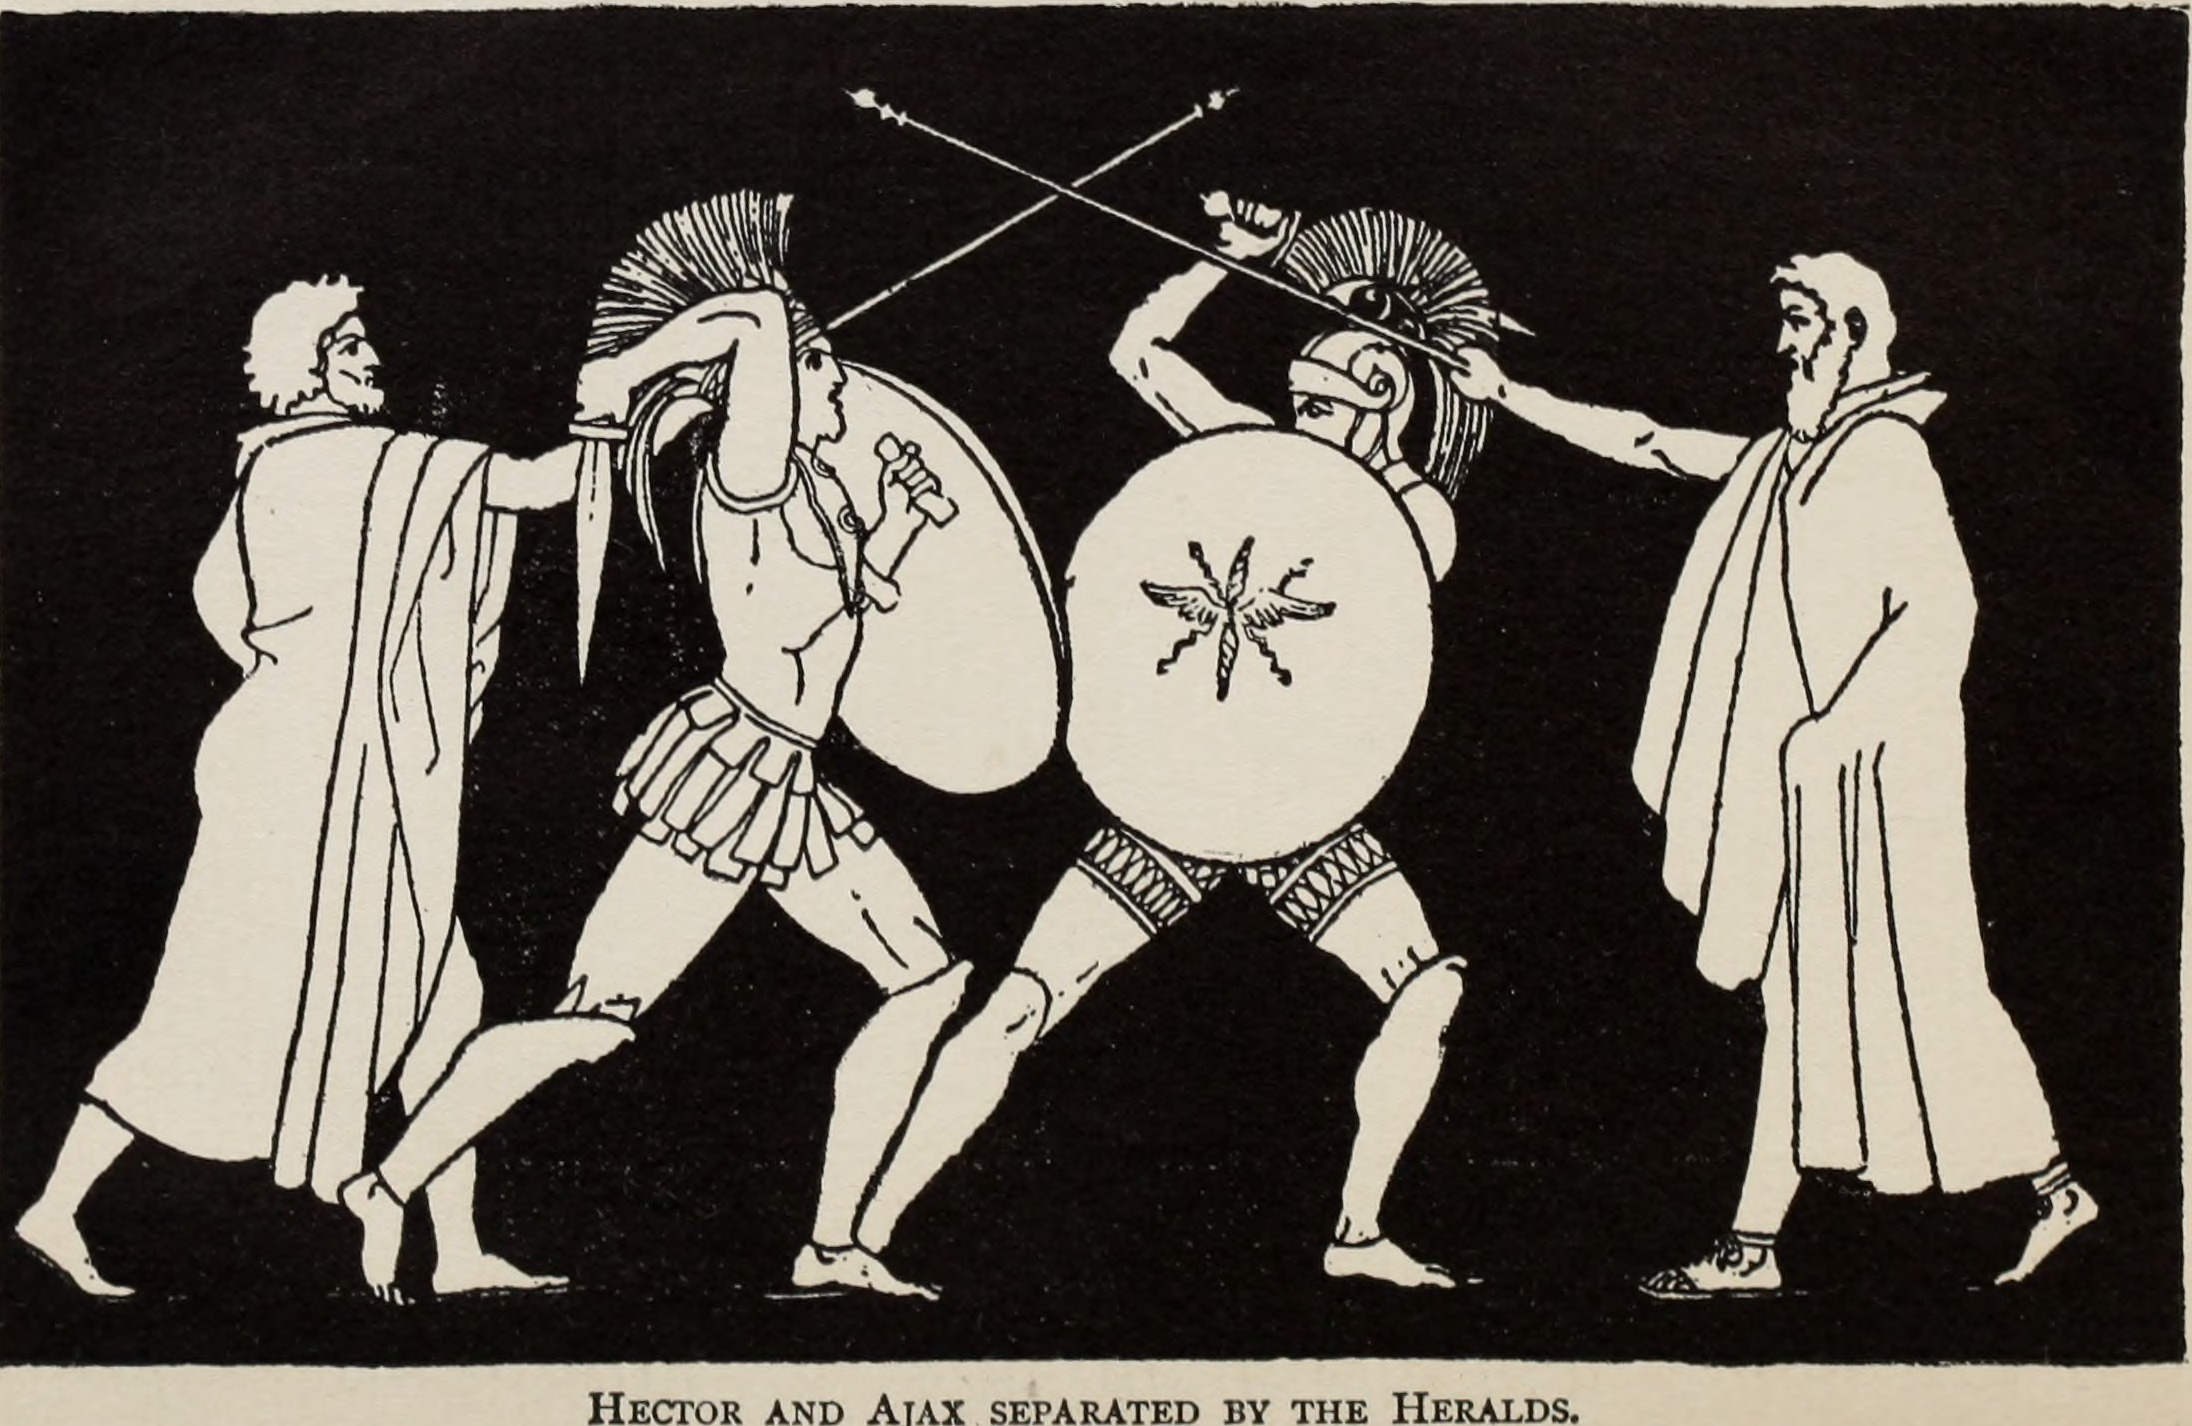 an analysis of the character of ajax in homers iliad The iliad: book 9 analysis homer characters archetypes sparknotes bookrags the meaning summary overview critique of explanation online education meaning metaphors symbolism characterization itunes.